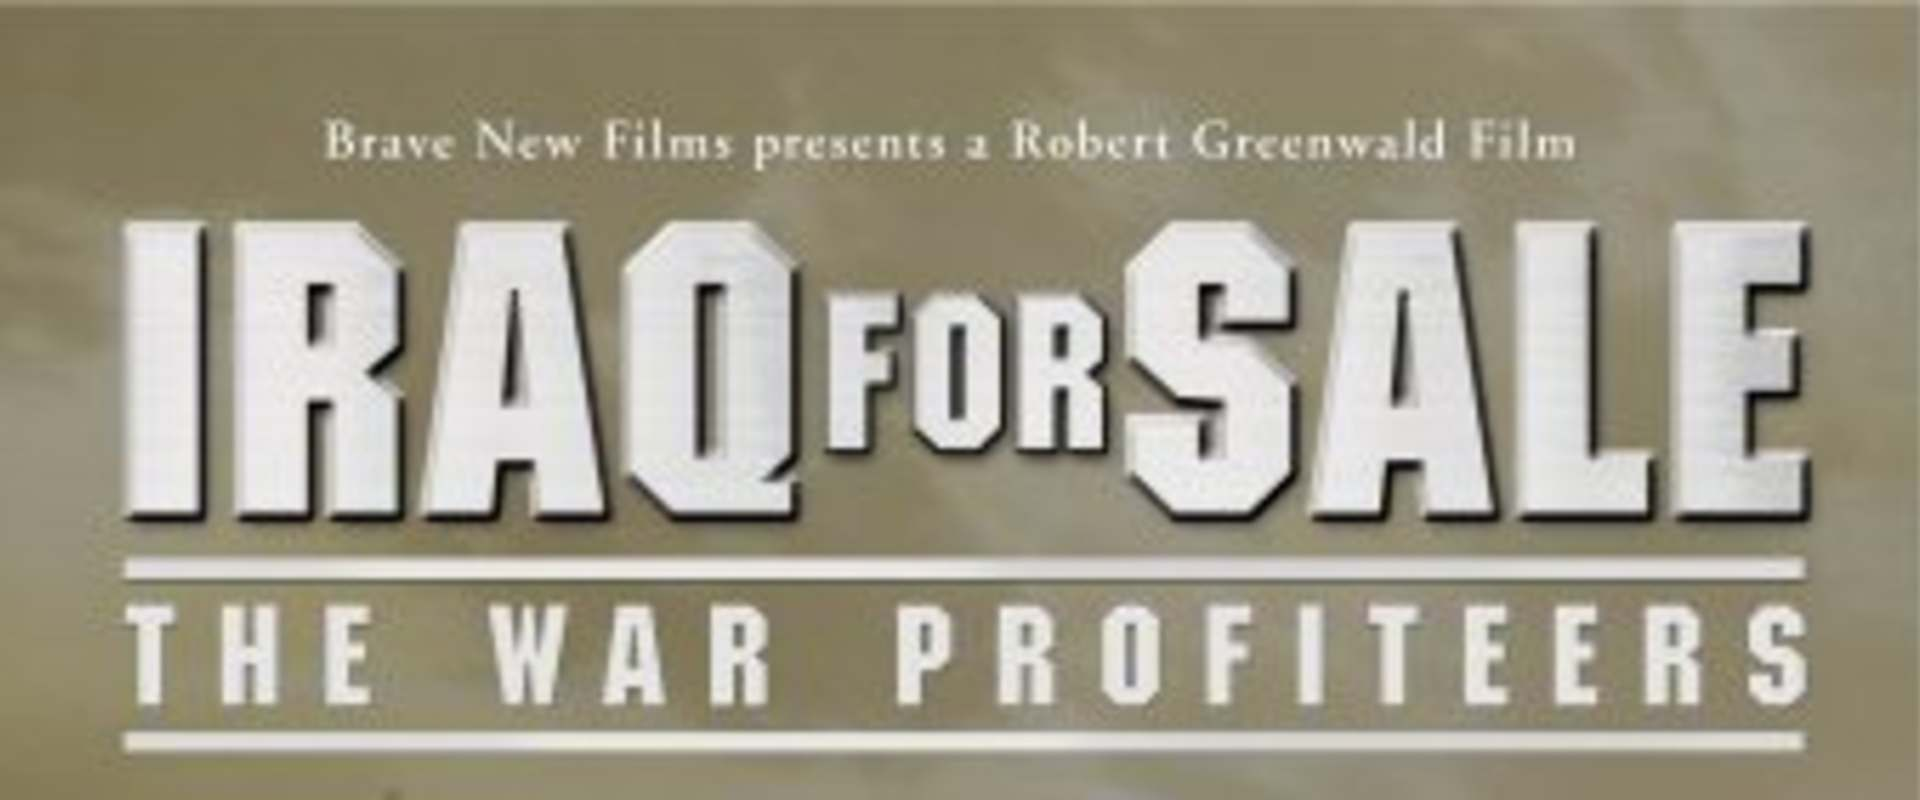 Iraq for Sale: The War Profiteers background 1